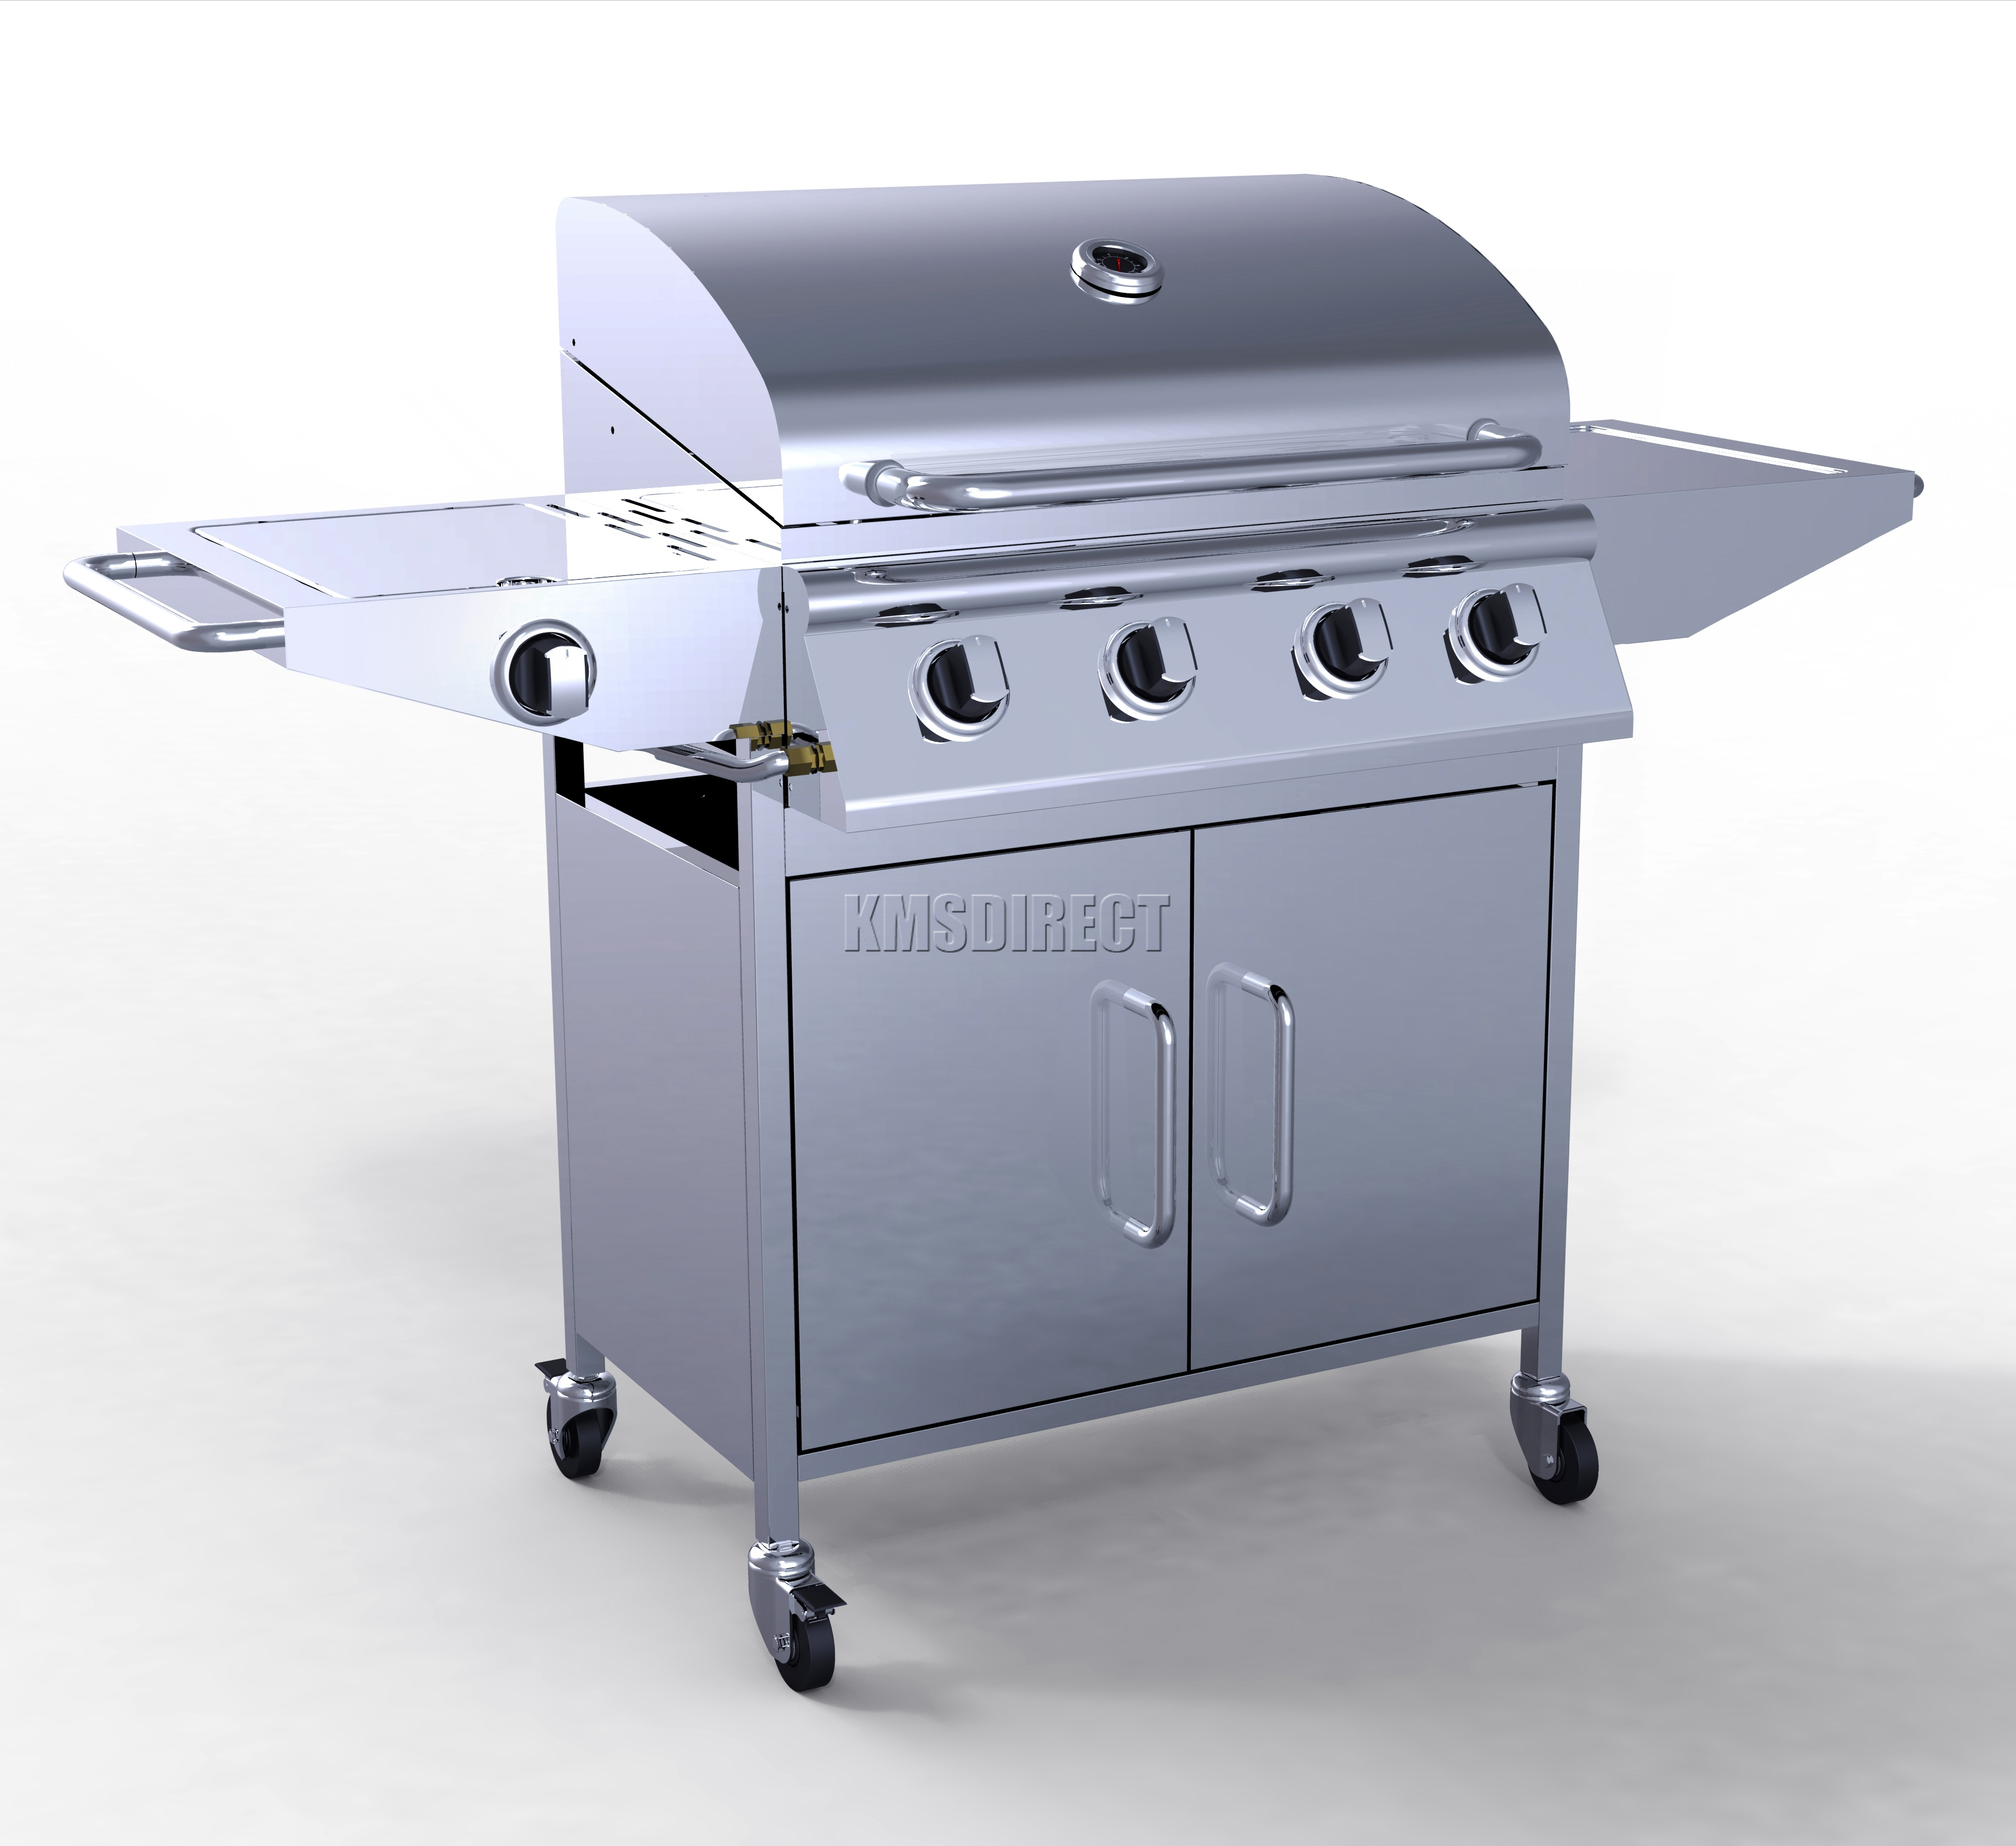 foxhunter 4 burner bbq gas grill stainless steel barbecue. Black Bedroom Furniture Sets. Home Design Ideas